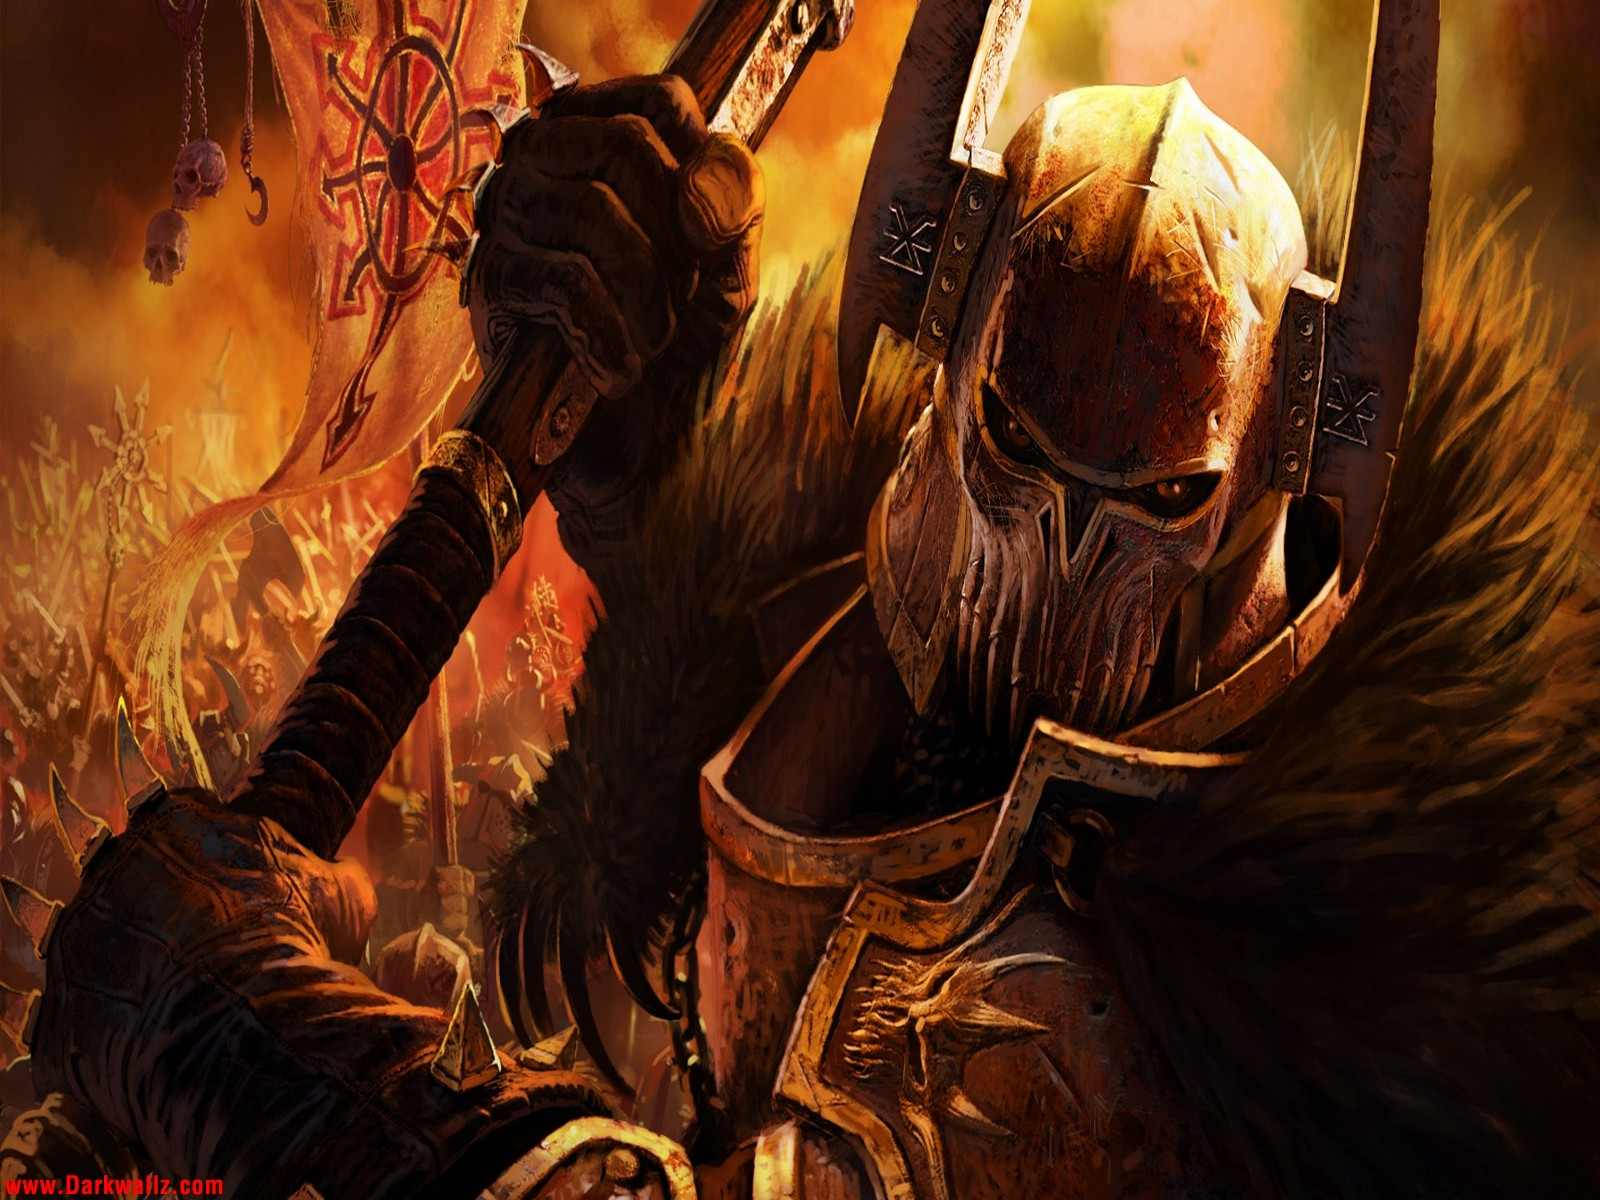 Warrior Wallpapers 15 | Dark Wallpaper Download